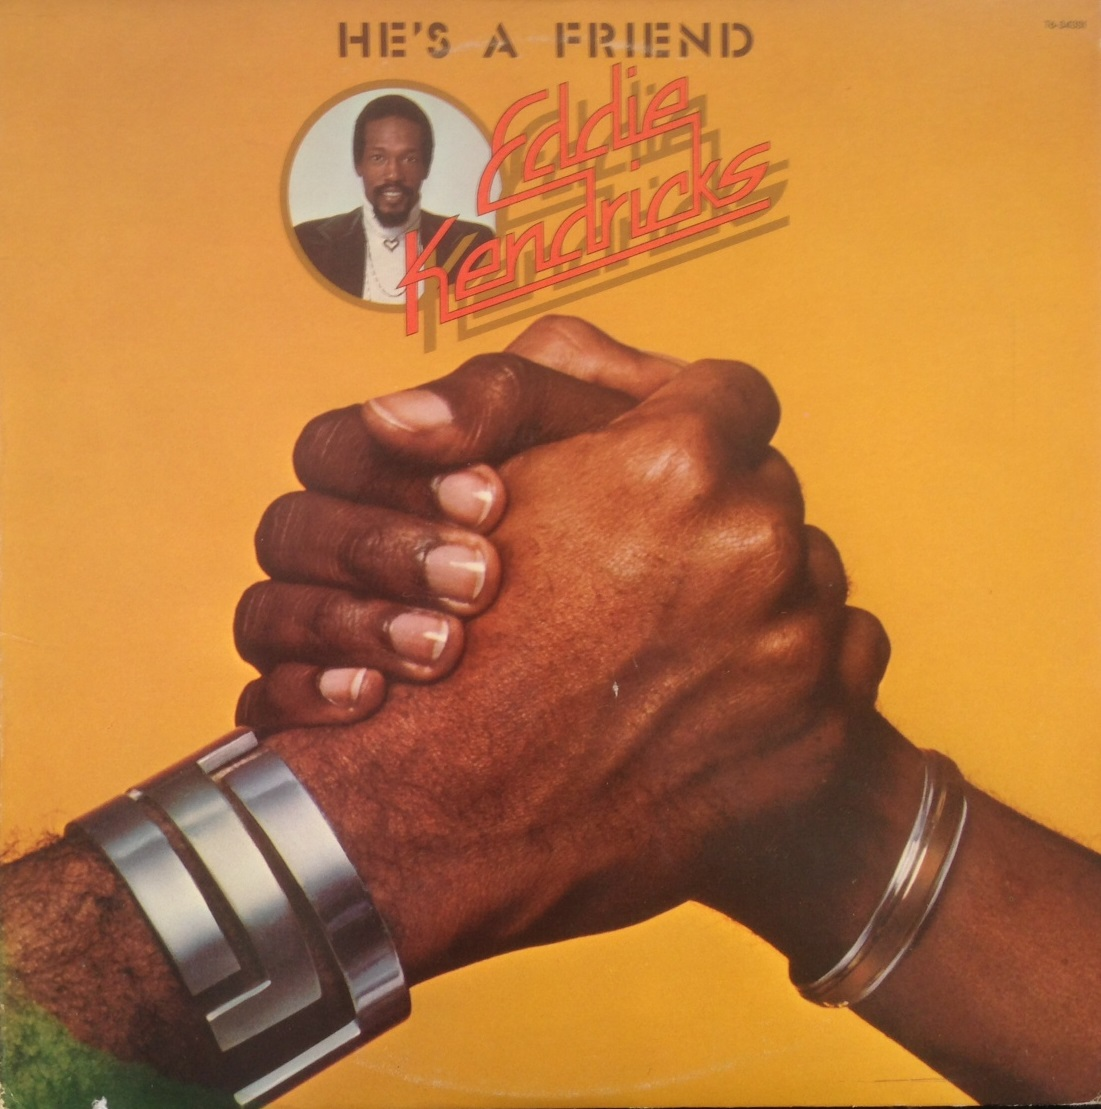 EDDIE KENDRICKS / HE'S A FRIEND